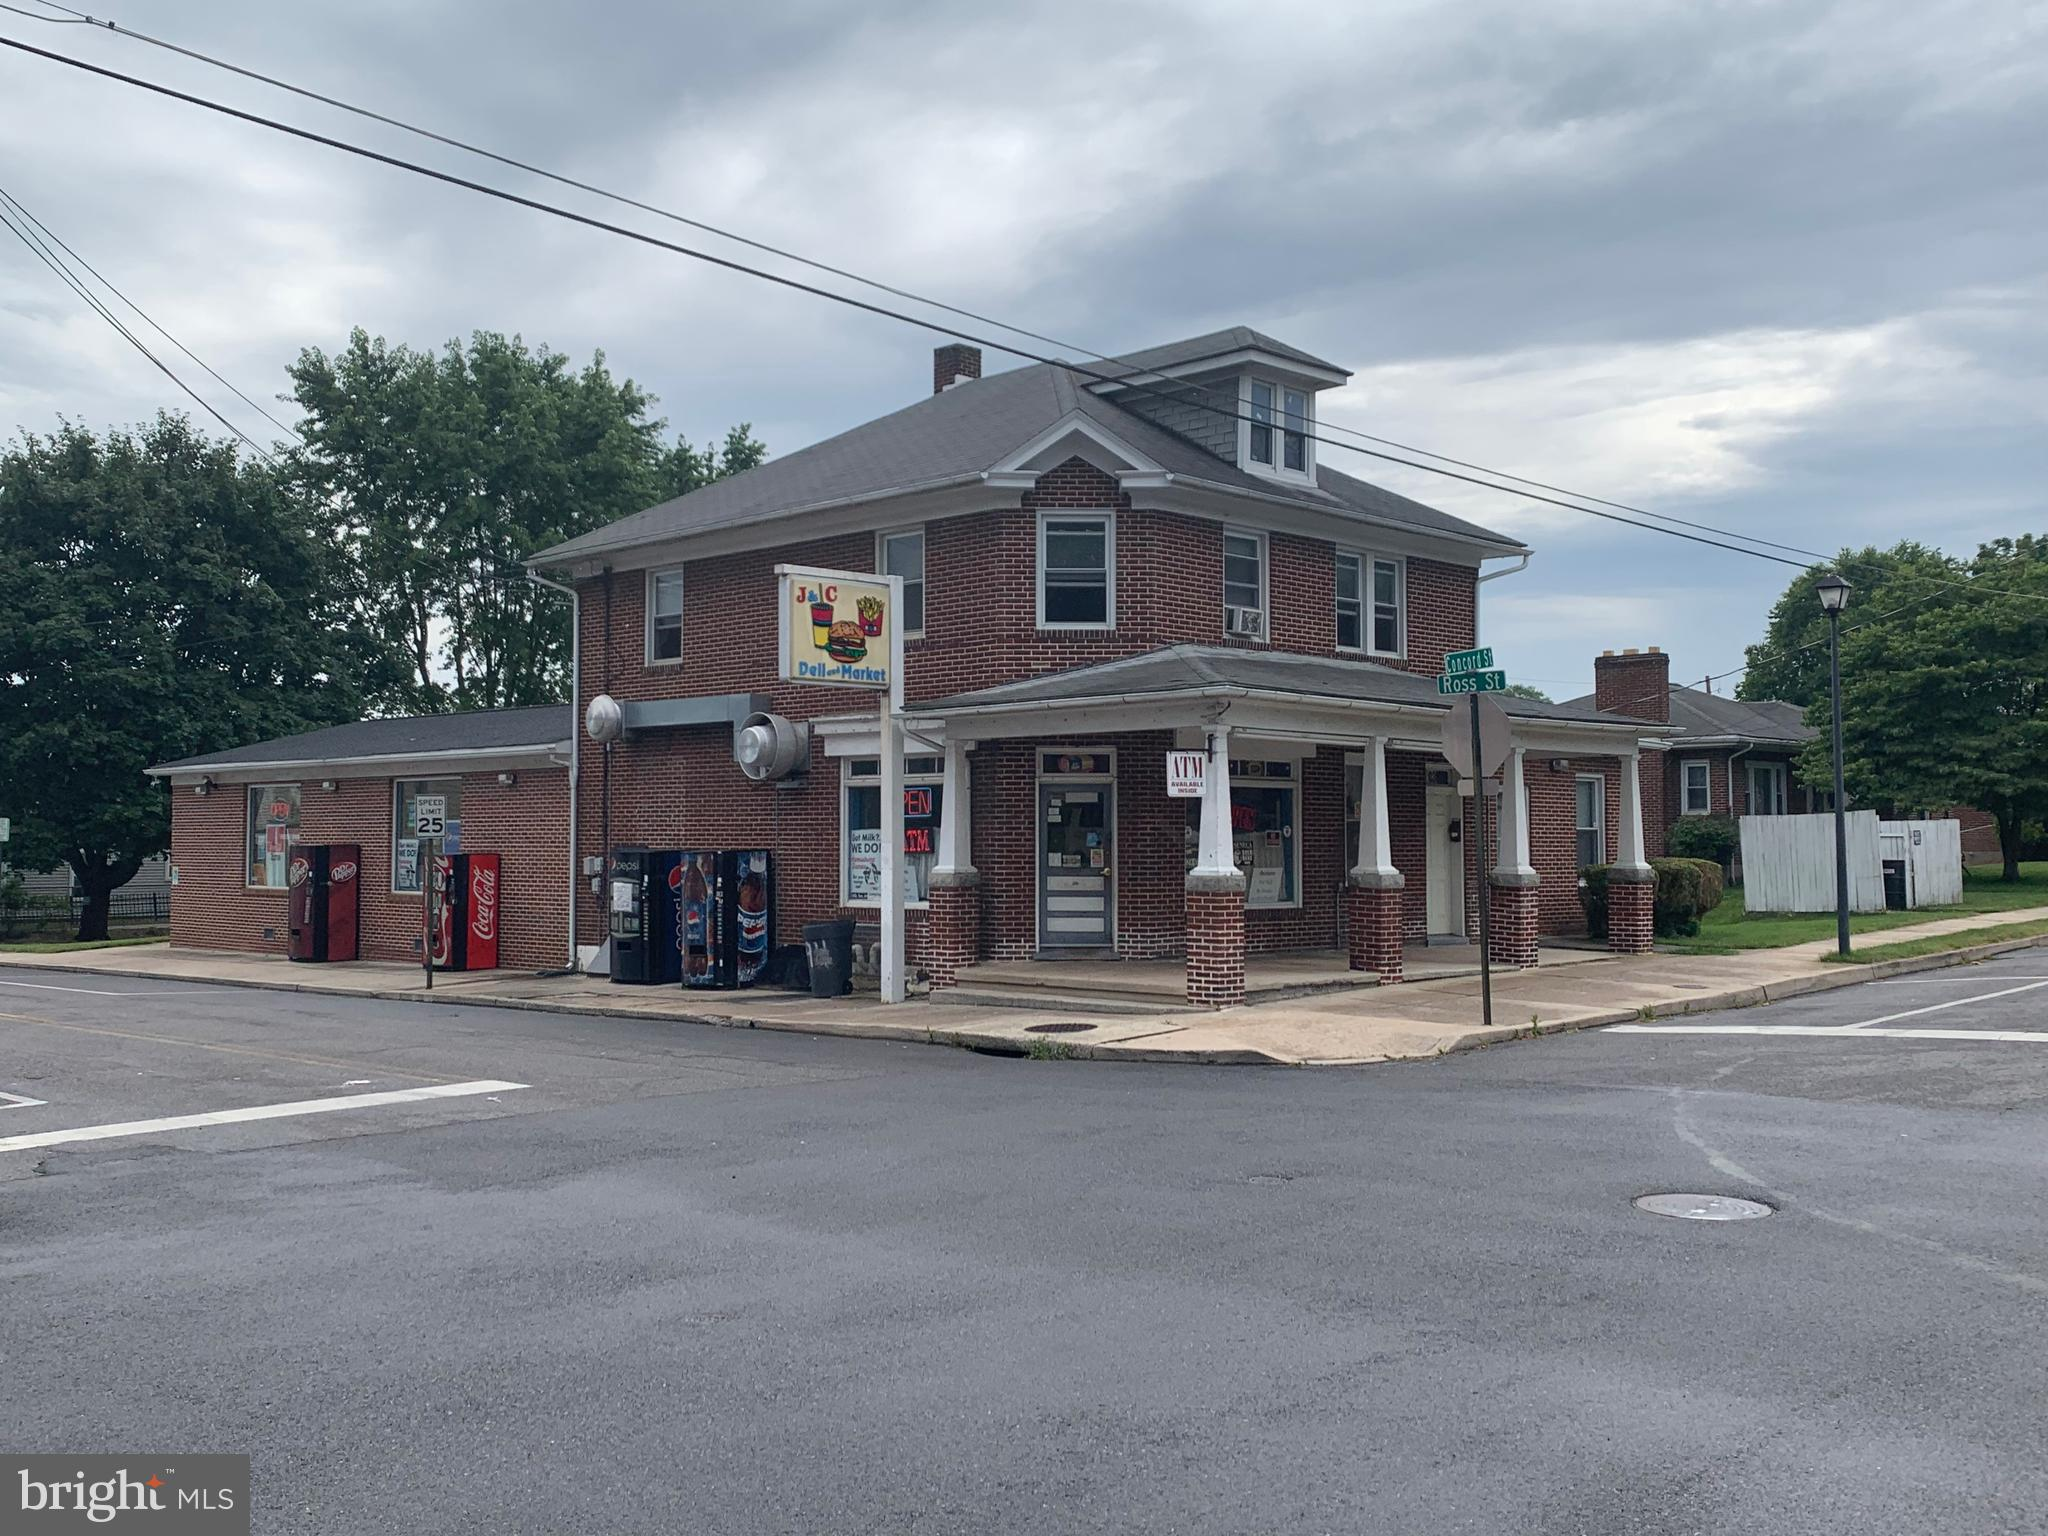 RG Realty is pleased to offer the opportunity to acquire the fee simple interest (Business & building ownership) 1,000 ft2 apartment on 2nd level. Sellers want to retire from this 20 years + family business convenience store, with many loyal customers.  Make money from day One! The store is fully operational already established with a great reputation, very clean and fully equipped, located on a Well-established suburban Neighborhood. The area is both residential and commercial with great visibility due to its corner location, ample parking for patrons available. This store has unlimited potential for the right owner operator. Confidentiality agreement (NDA) is require for preliminary financial information.